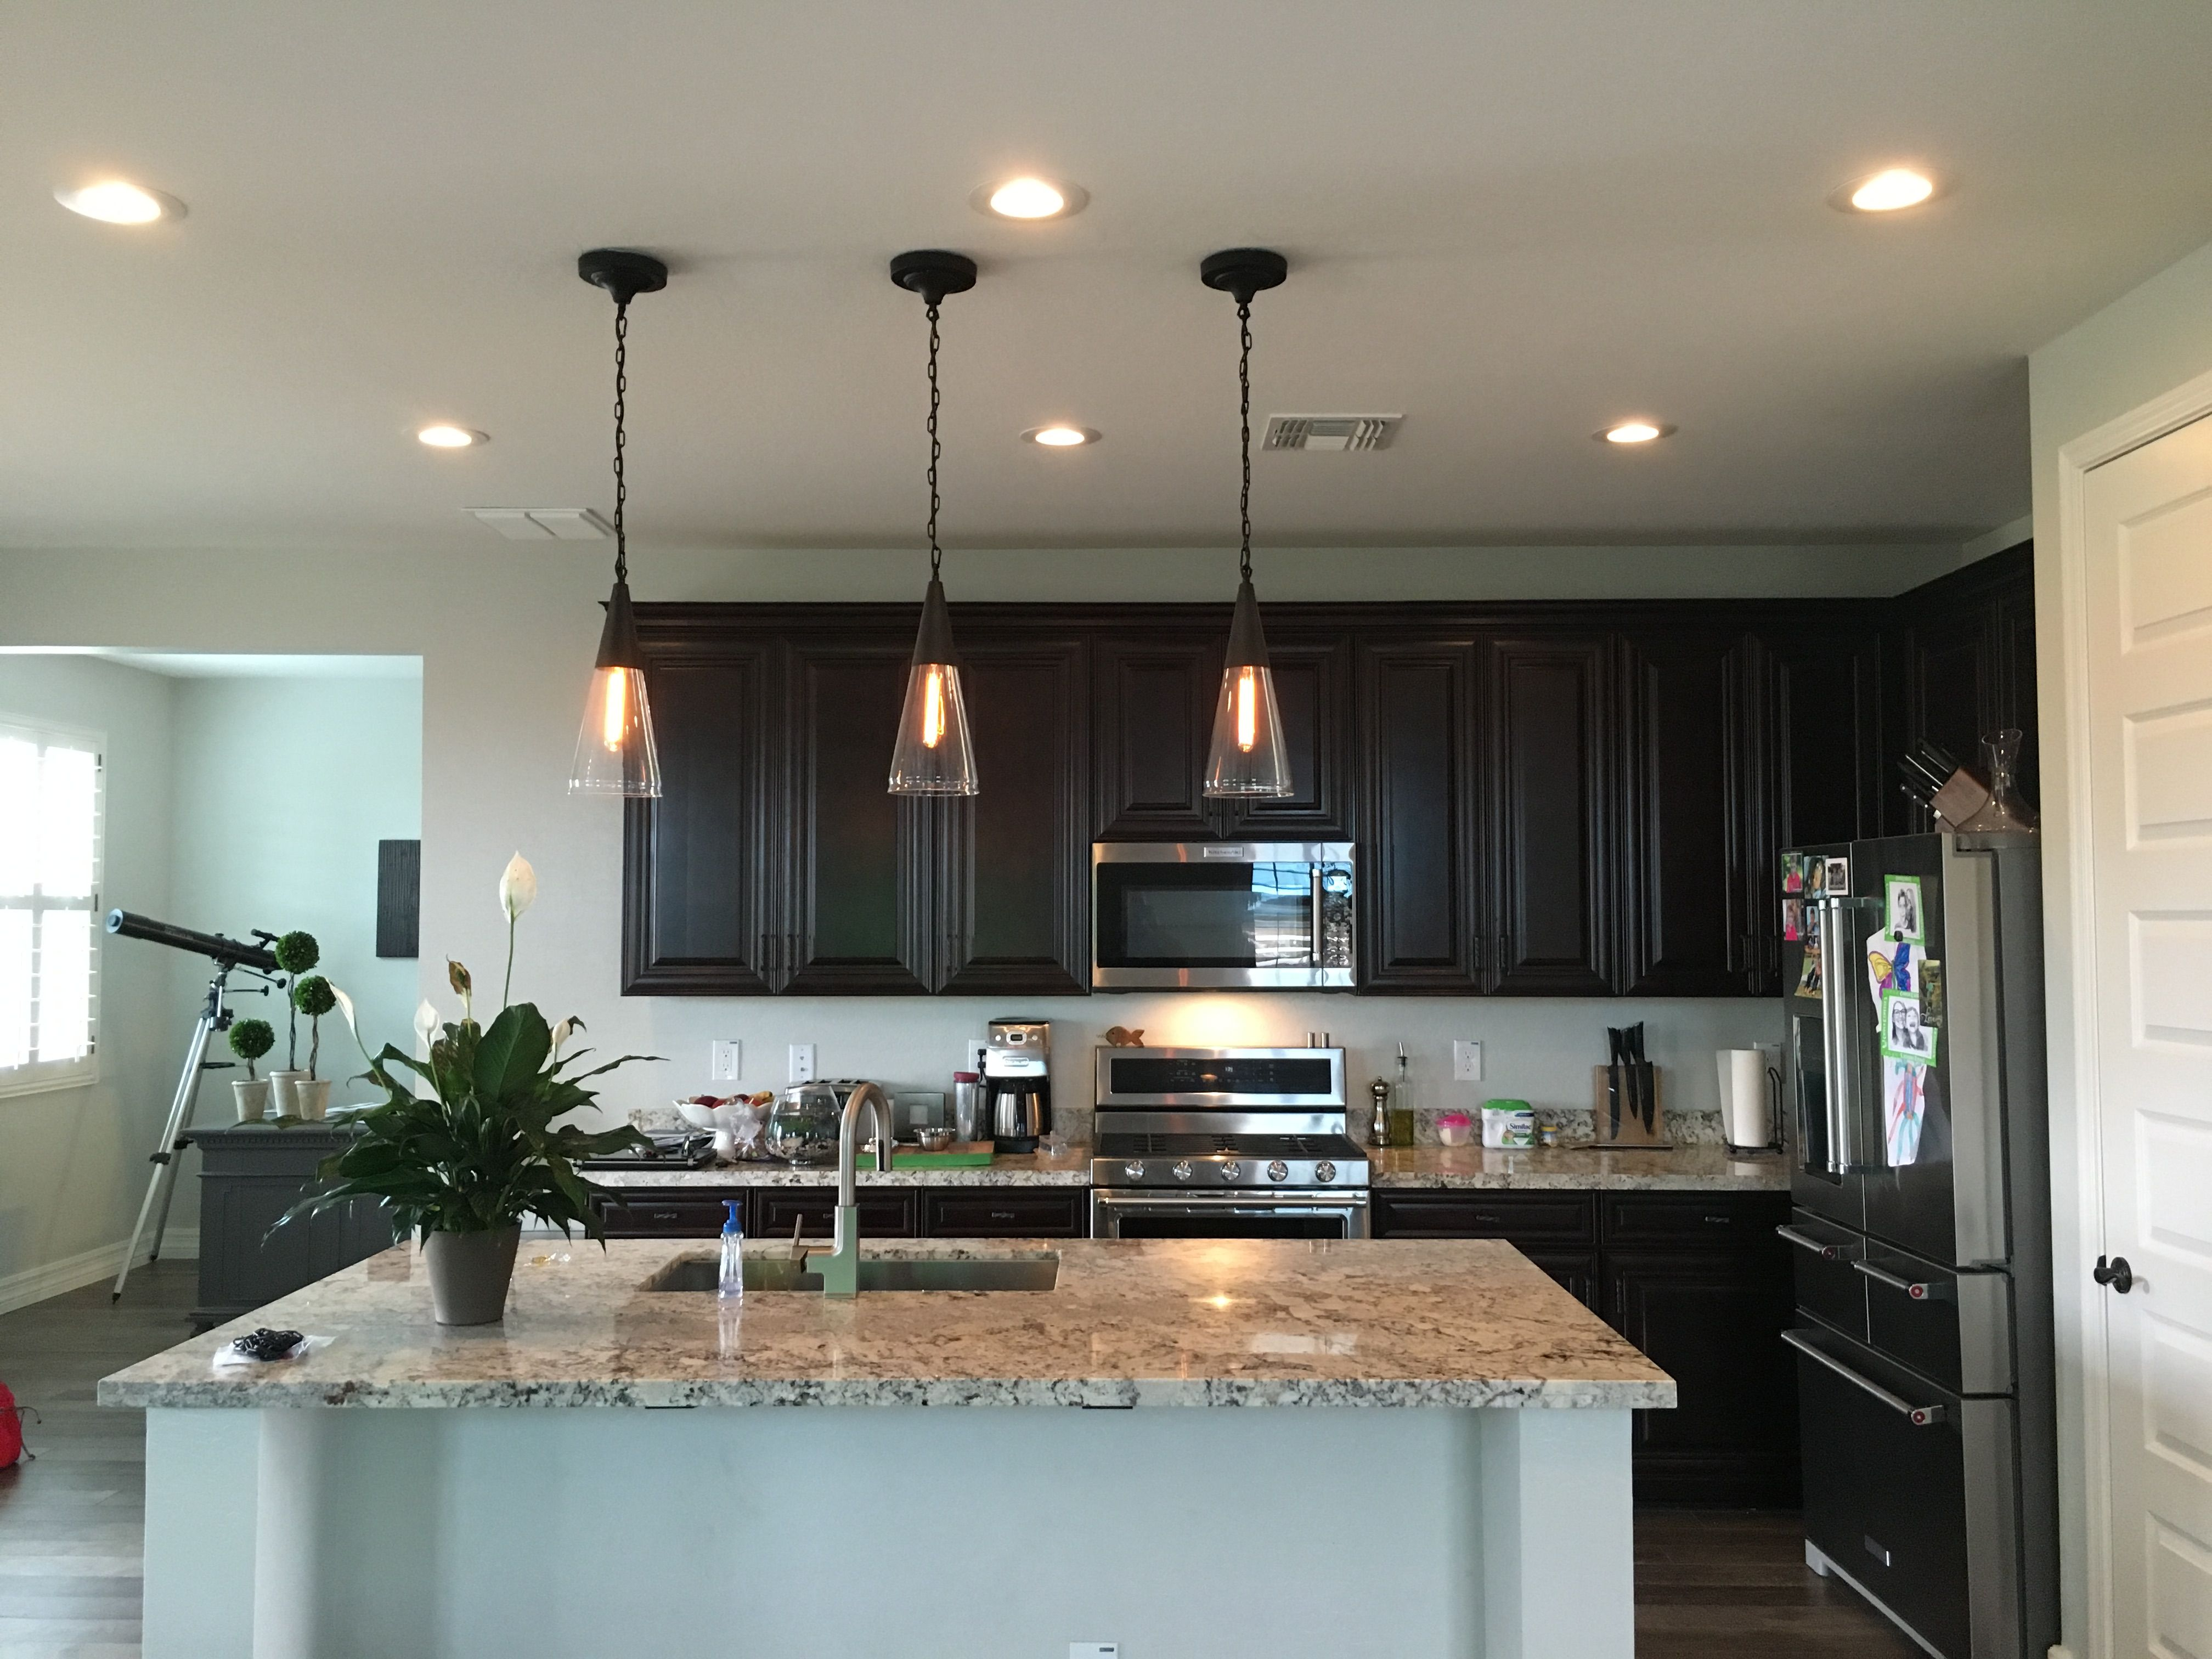 Az Recessed Lighting Installation Of Led Lights And Island Pendants Another Modern Remodel Az Recessed Li Recessed Lighting Led Recessed Lighting Can Lights